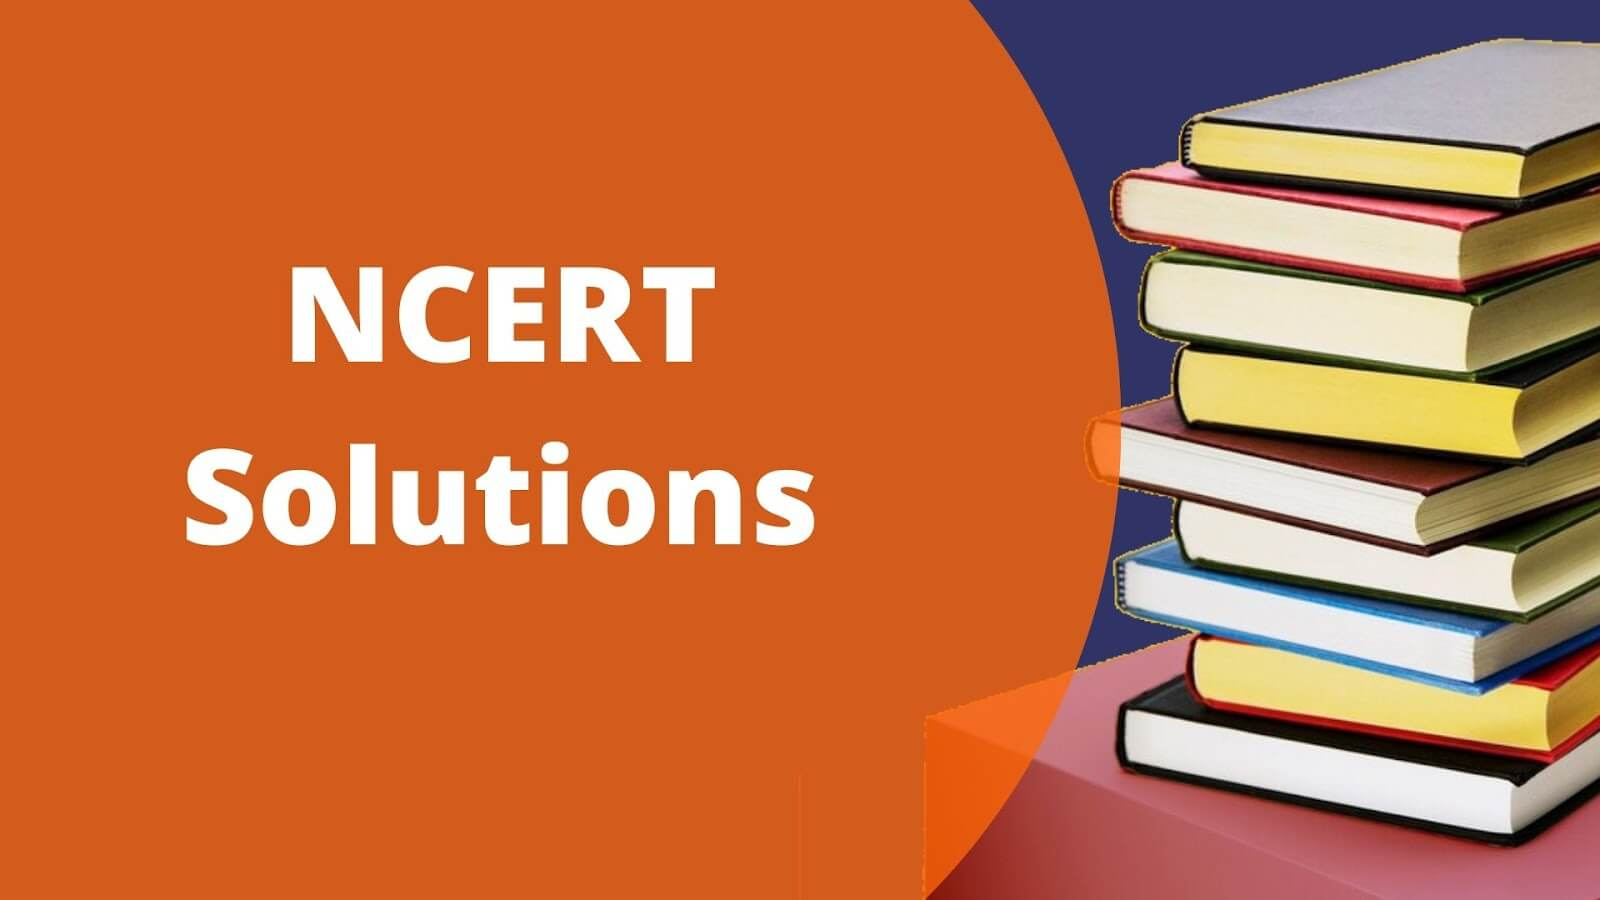 Preparation of Class 12 Board Using NCERT Solutions